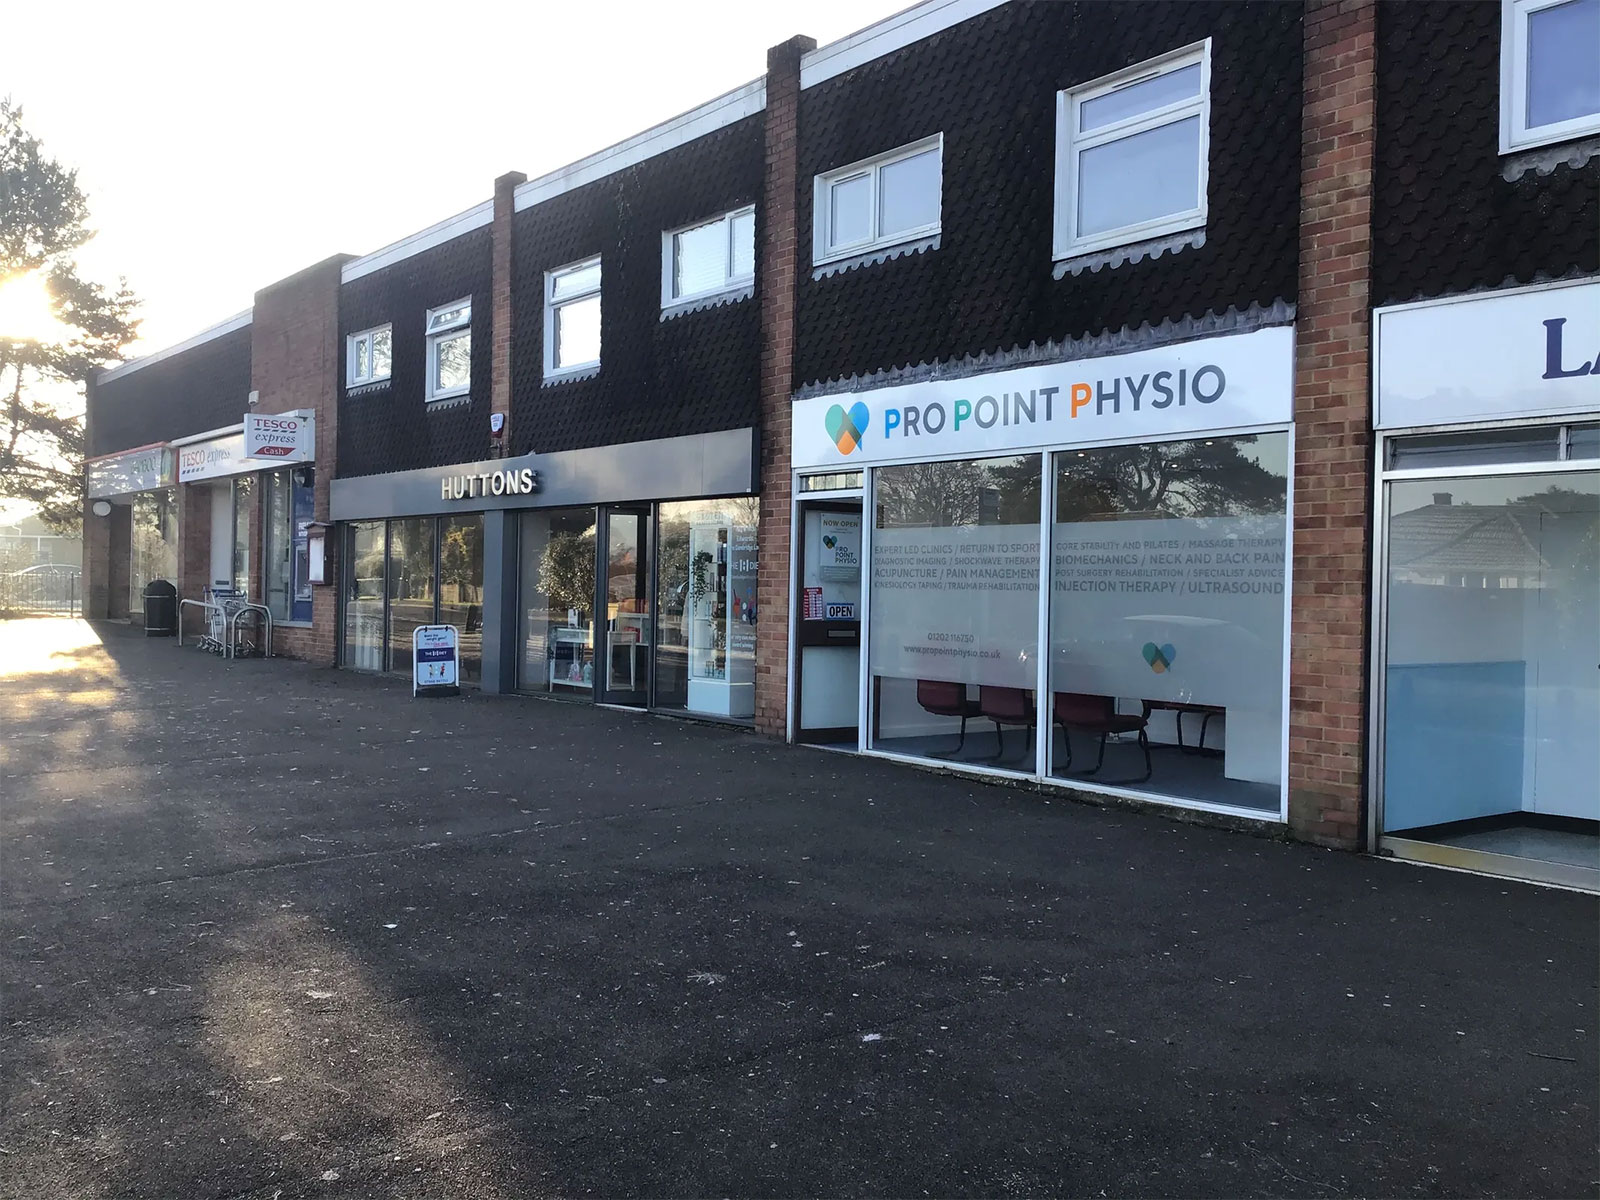 Pro Point Physio in Dorset